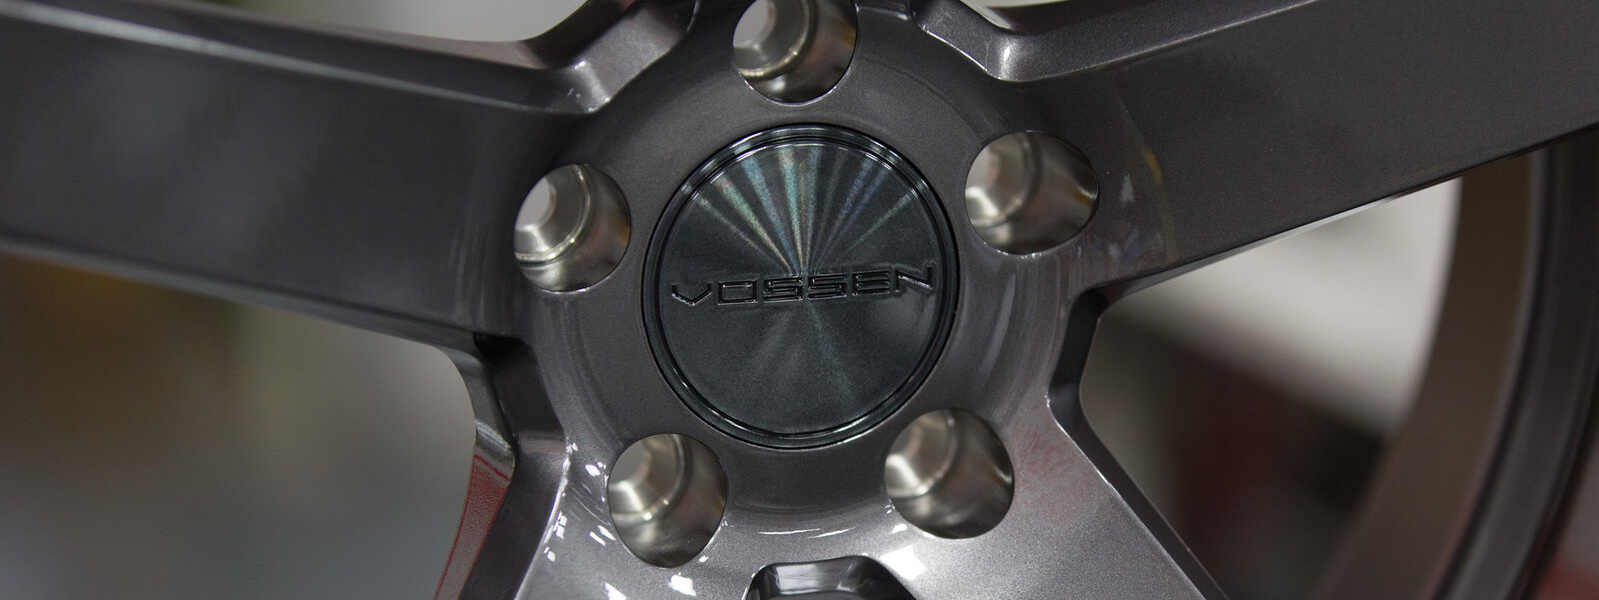 Vossen CV3R close up banner image